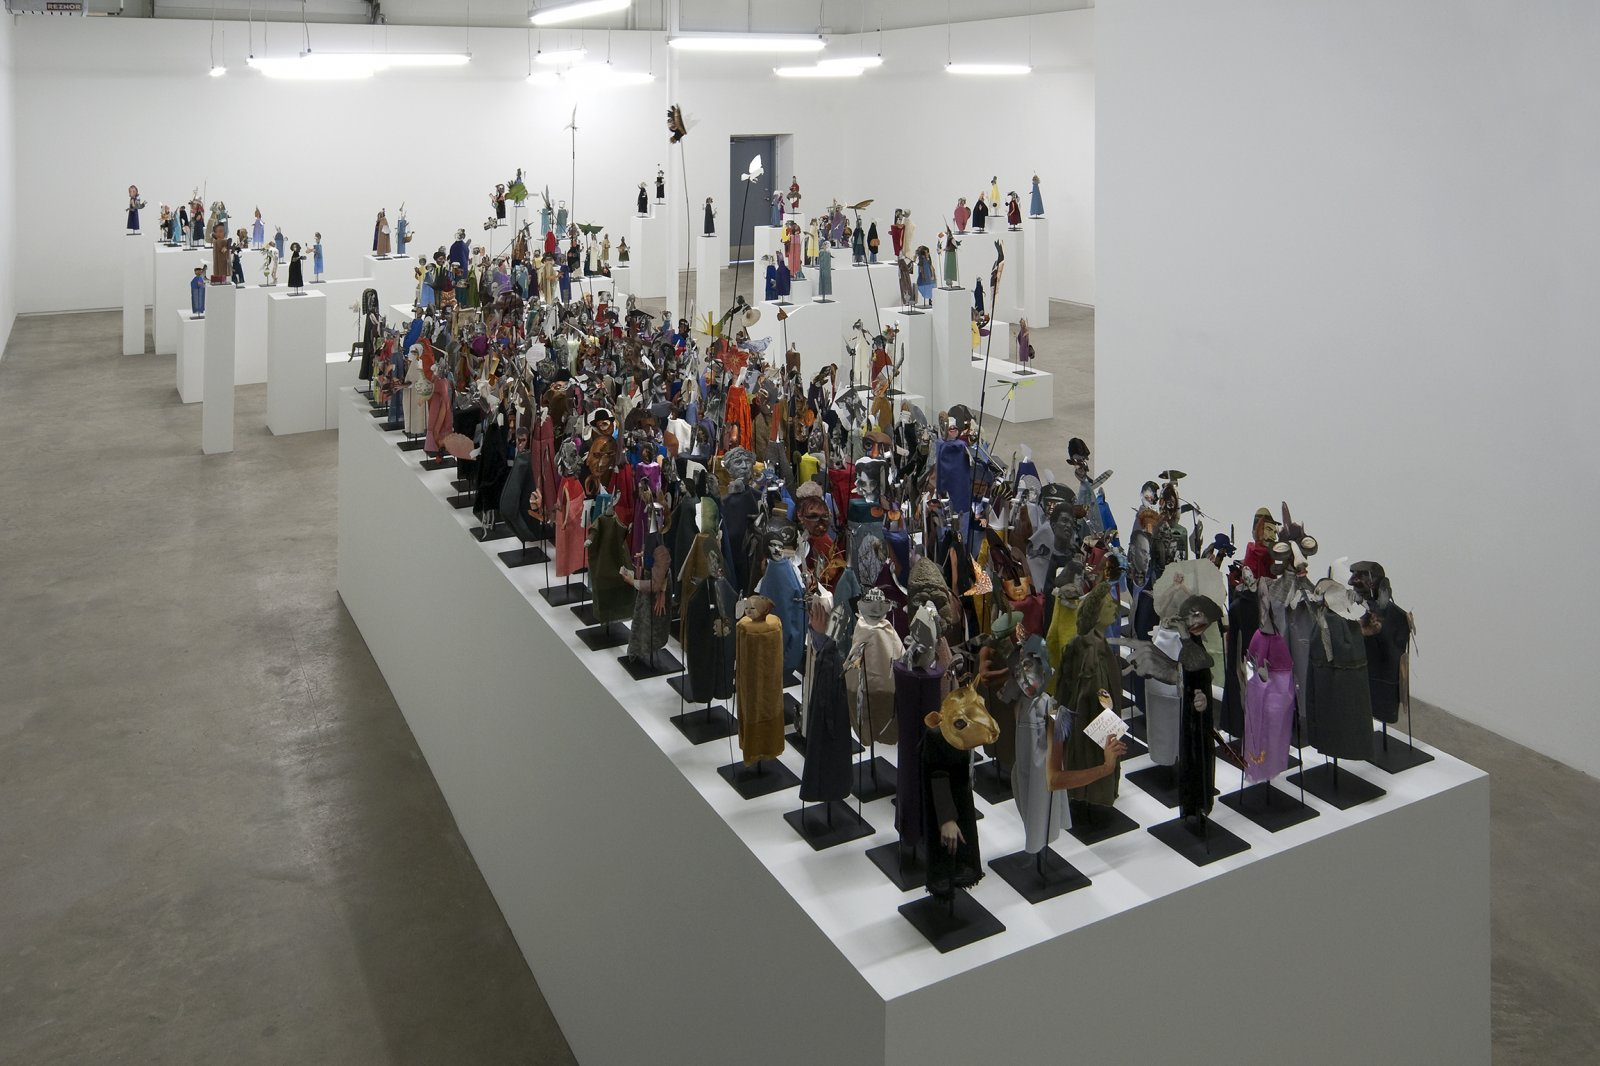 Geoffrey Farmer,The Surgeon and the Photographer, 2009, paper, textile, wood, metal, 365 figures, each figure approximately 18 x 5 x 5 in. (45 x 13 x 13 cm). Installation view, Catriona Jeffries, 2010